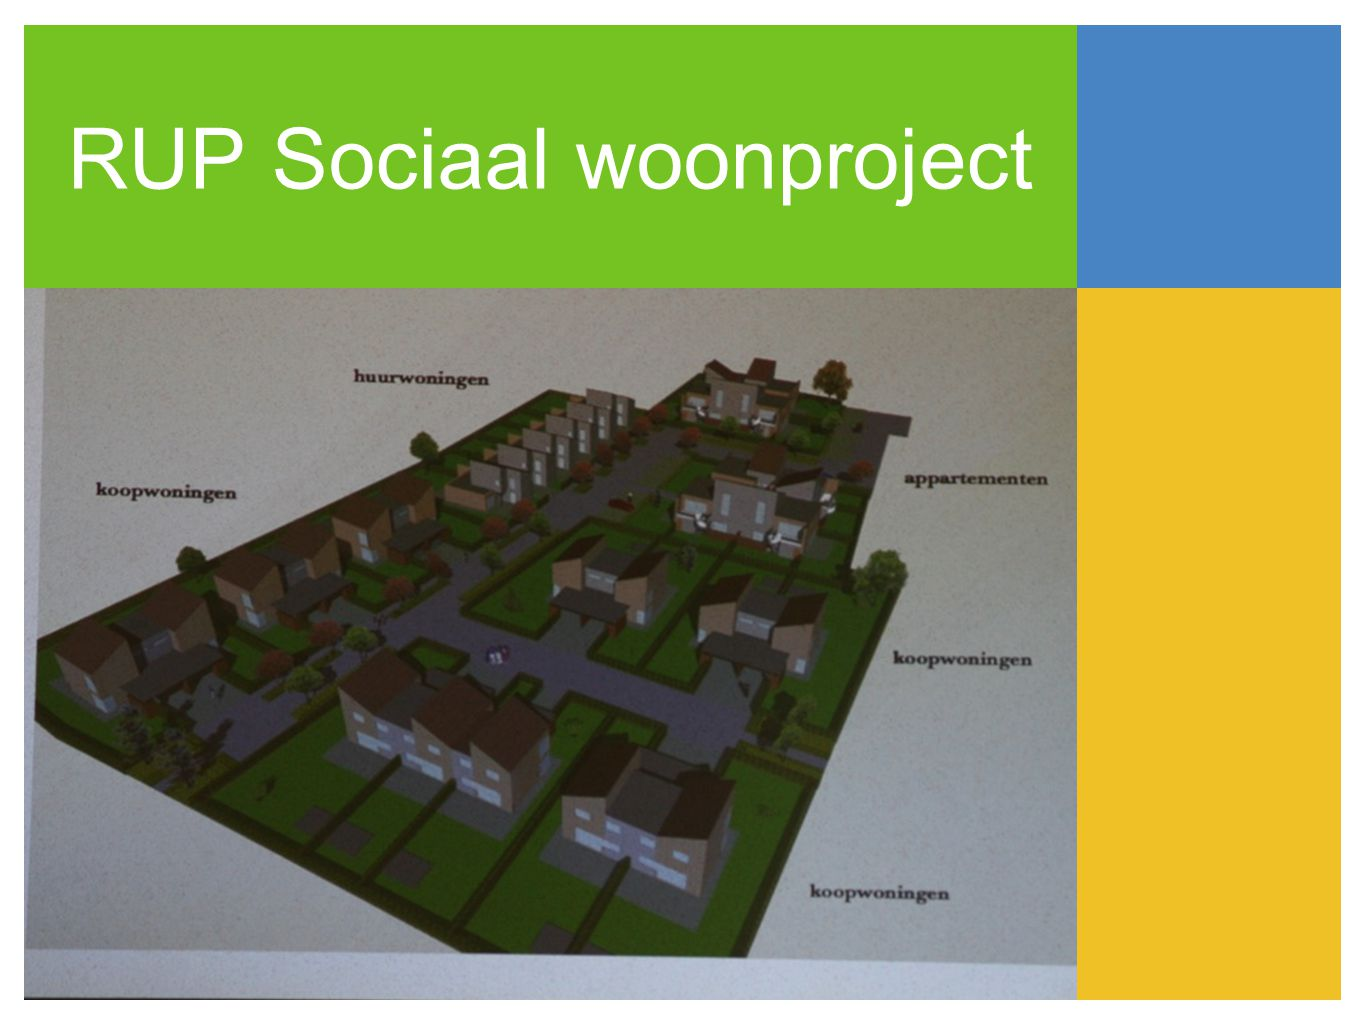 RUP Sociaal woonproject